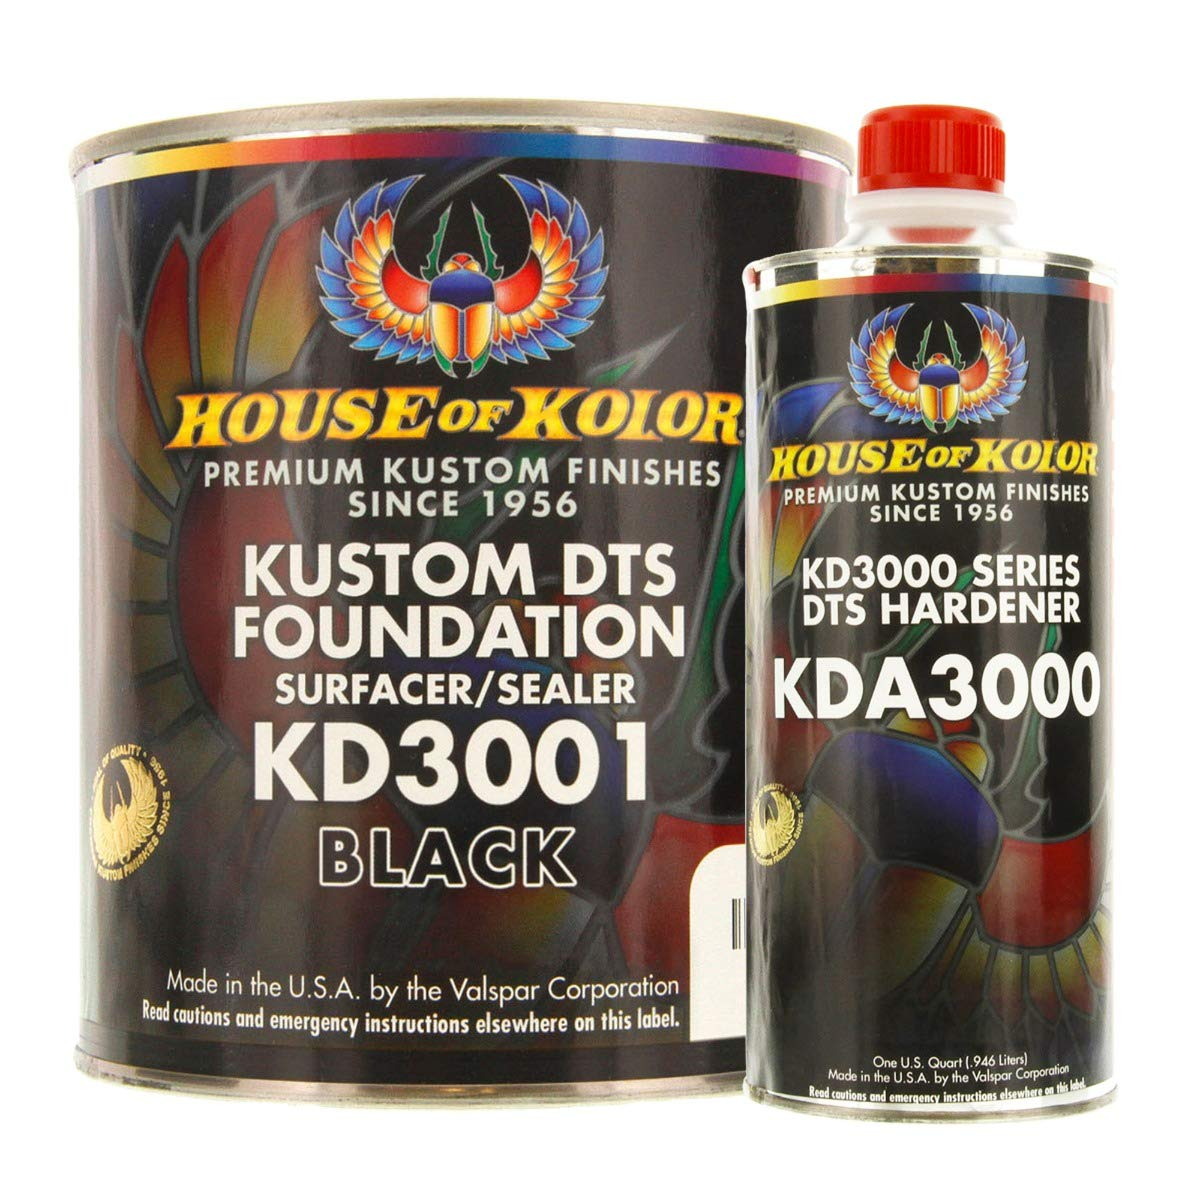 Kustom DTS Foundation Black Surfacer Sealer Kit w/Hardener (Gallon)